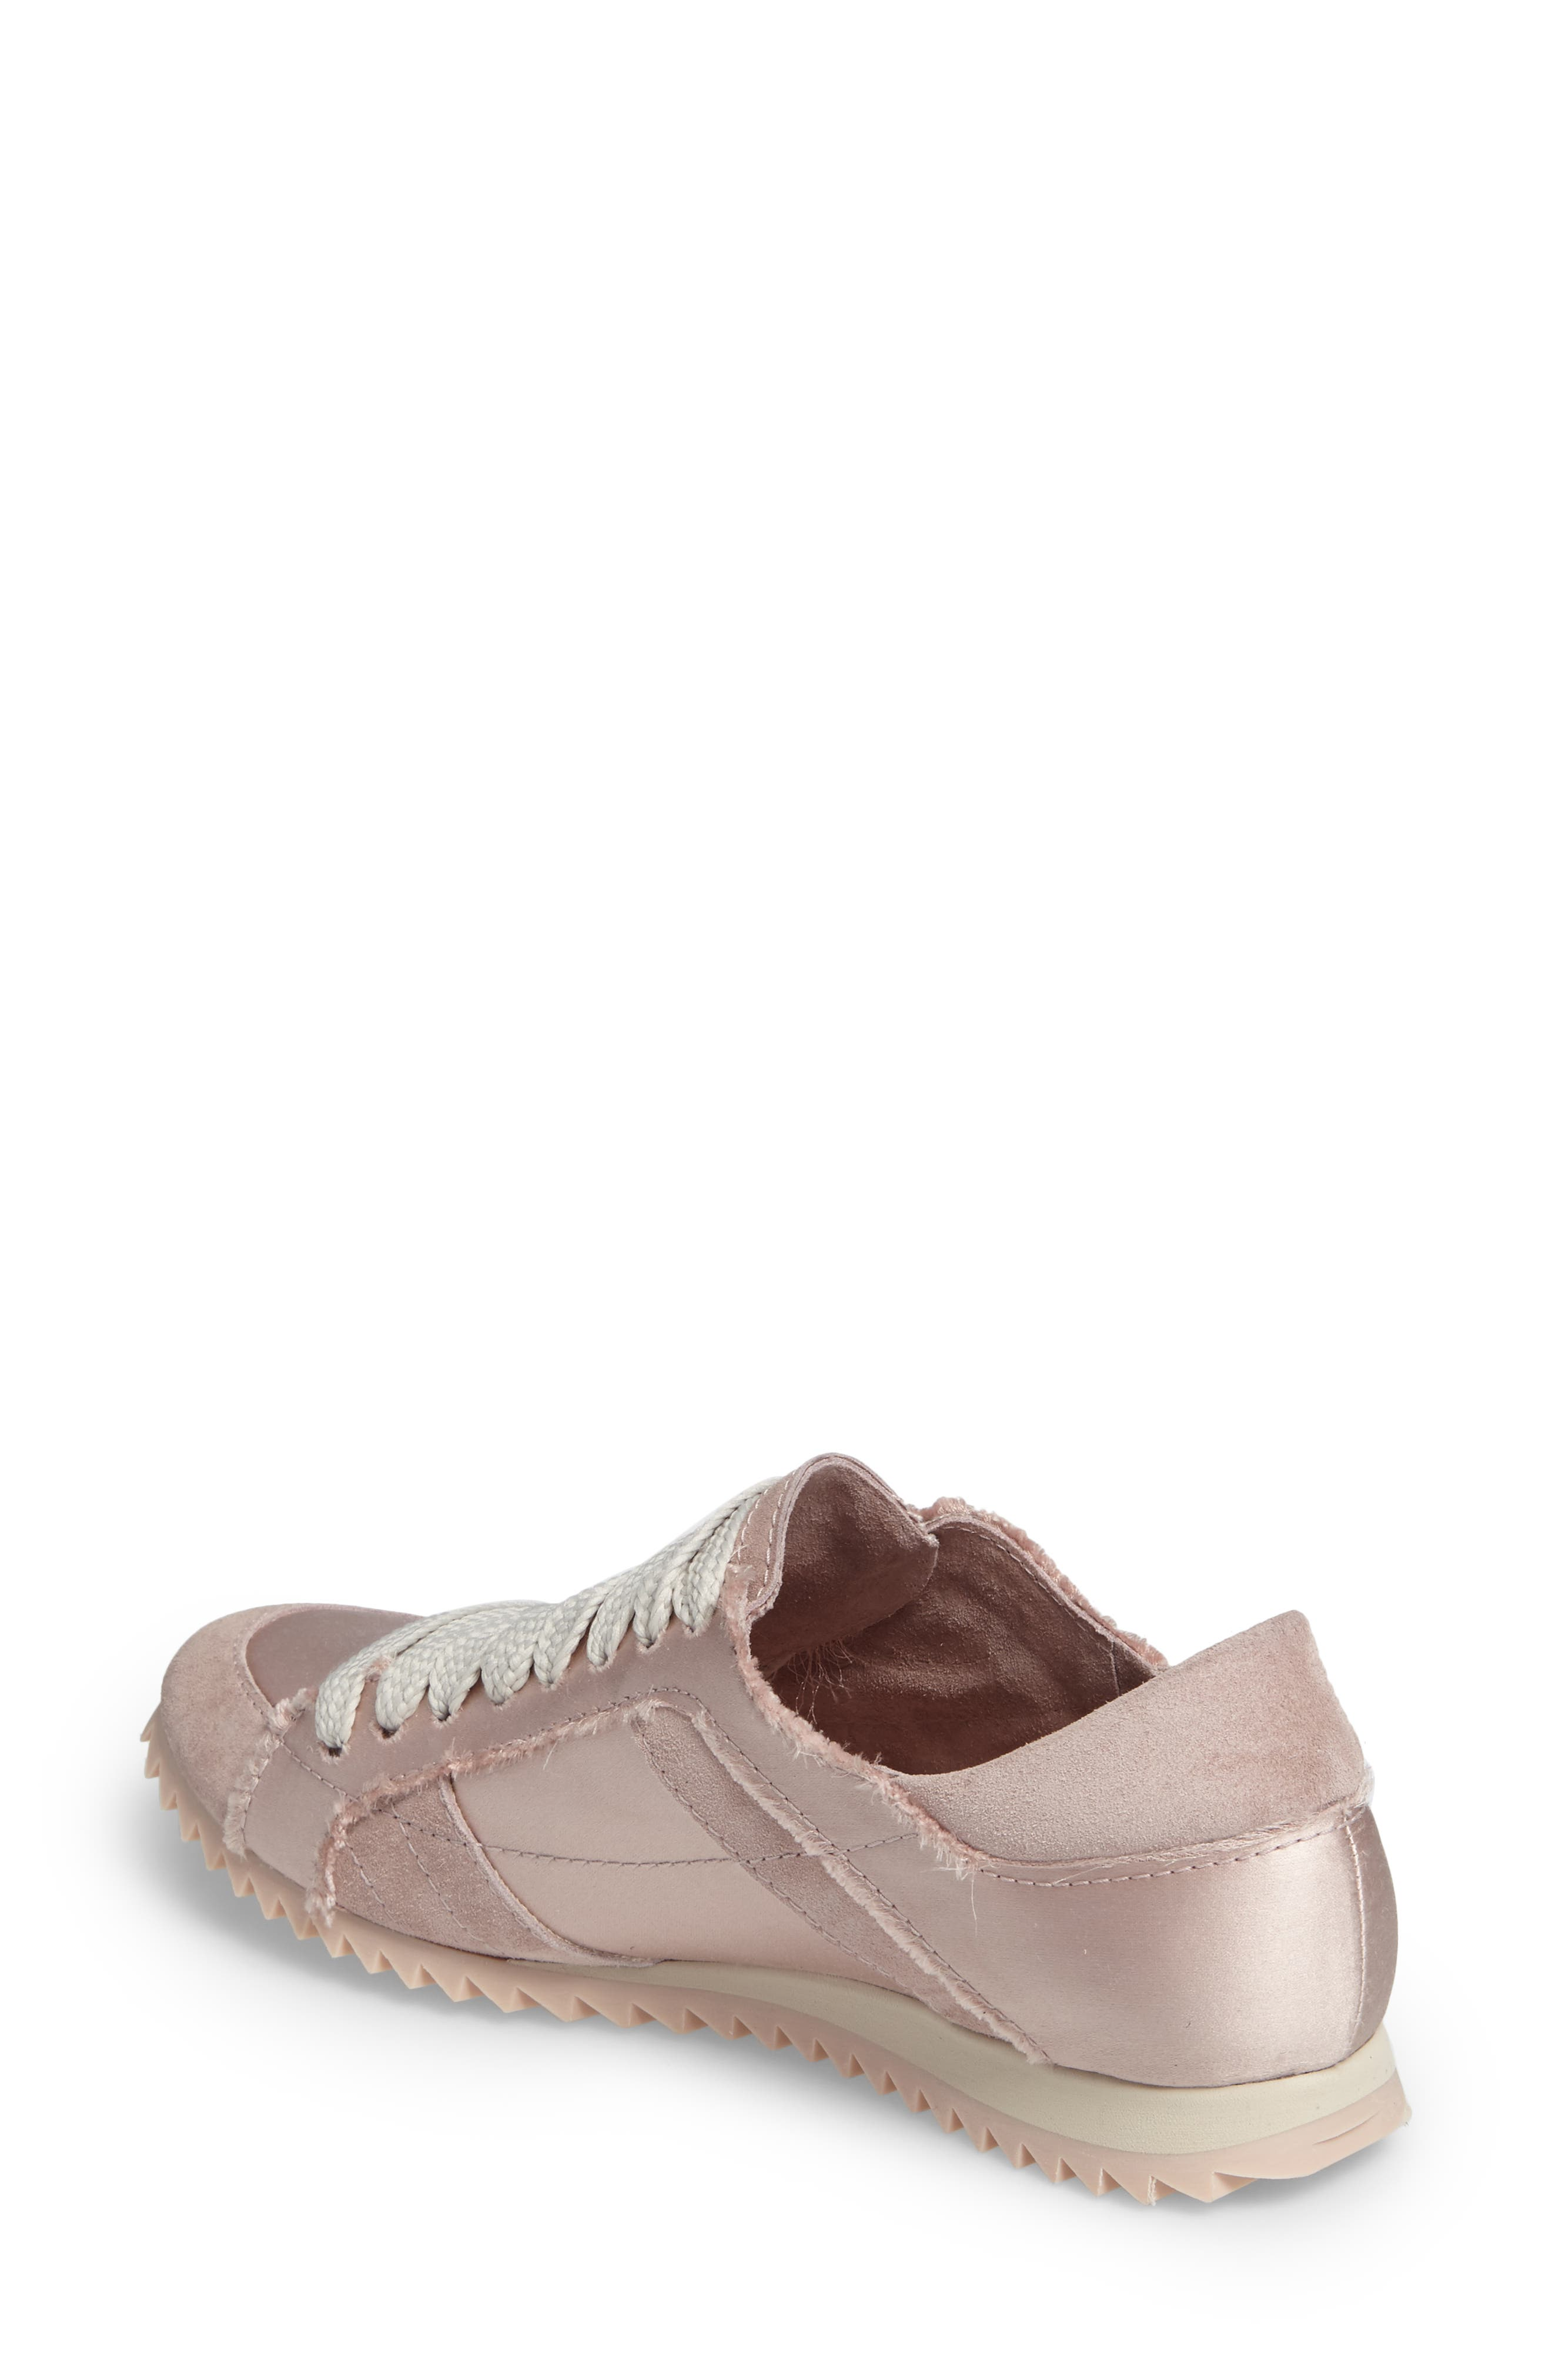 Cristina Trainer Sneaker,                             Alternate thumbnail 2, color,                             Light Pink Satin